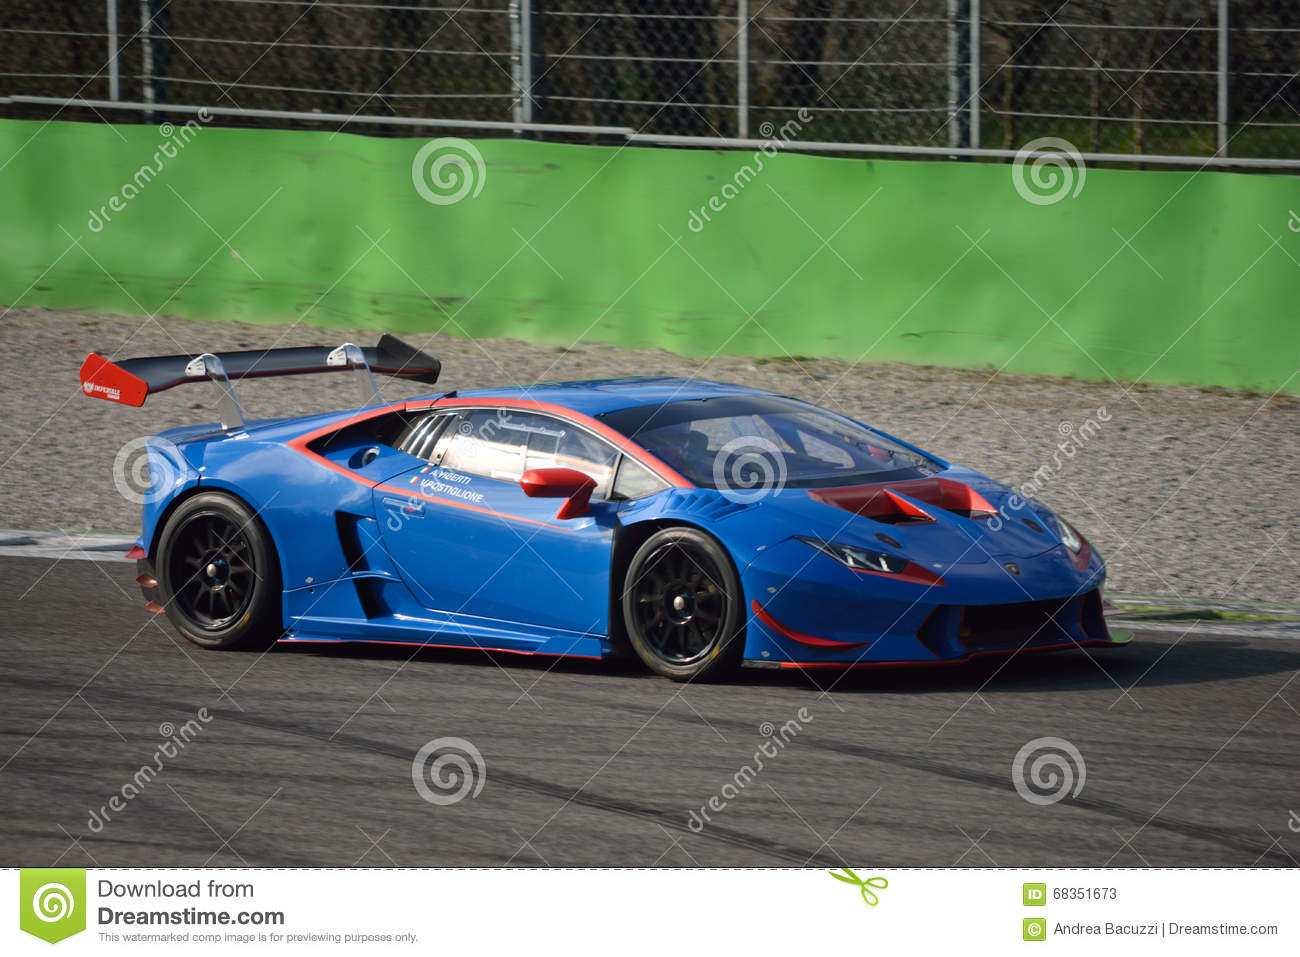 lamborghini hurac n super trofeo 2016 at monza editorial stock photo image 68351673. Black Bedroom Furniture Sets. Home Design Ideas